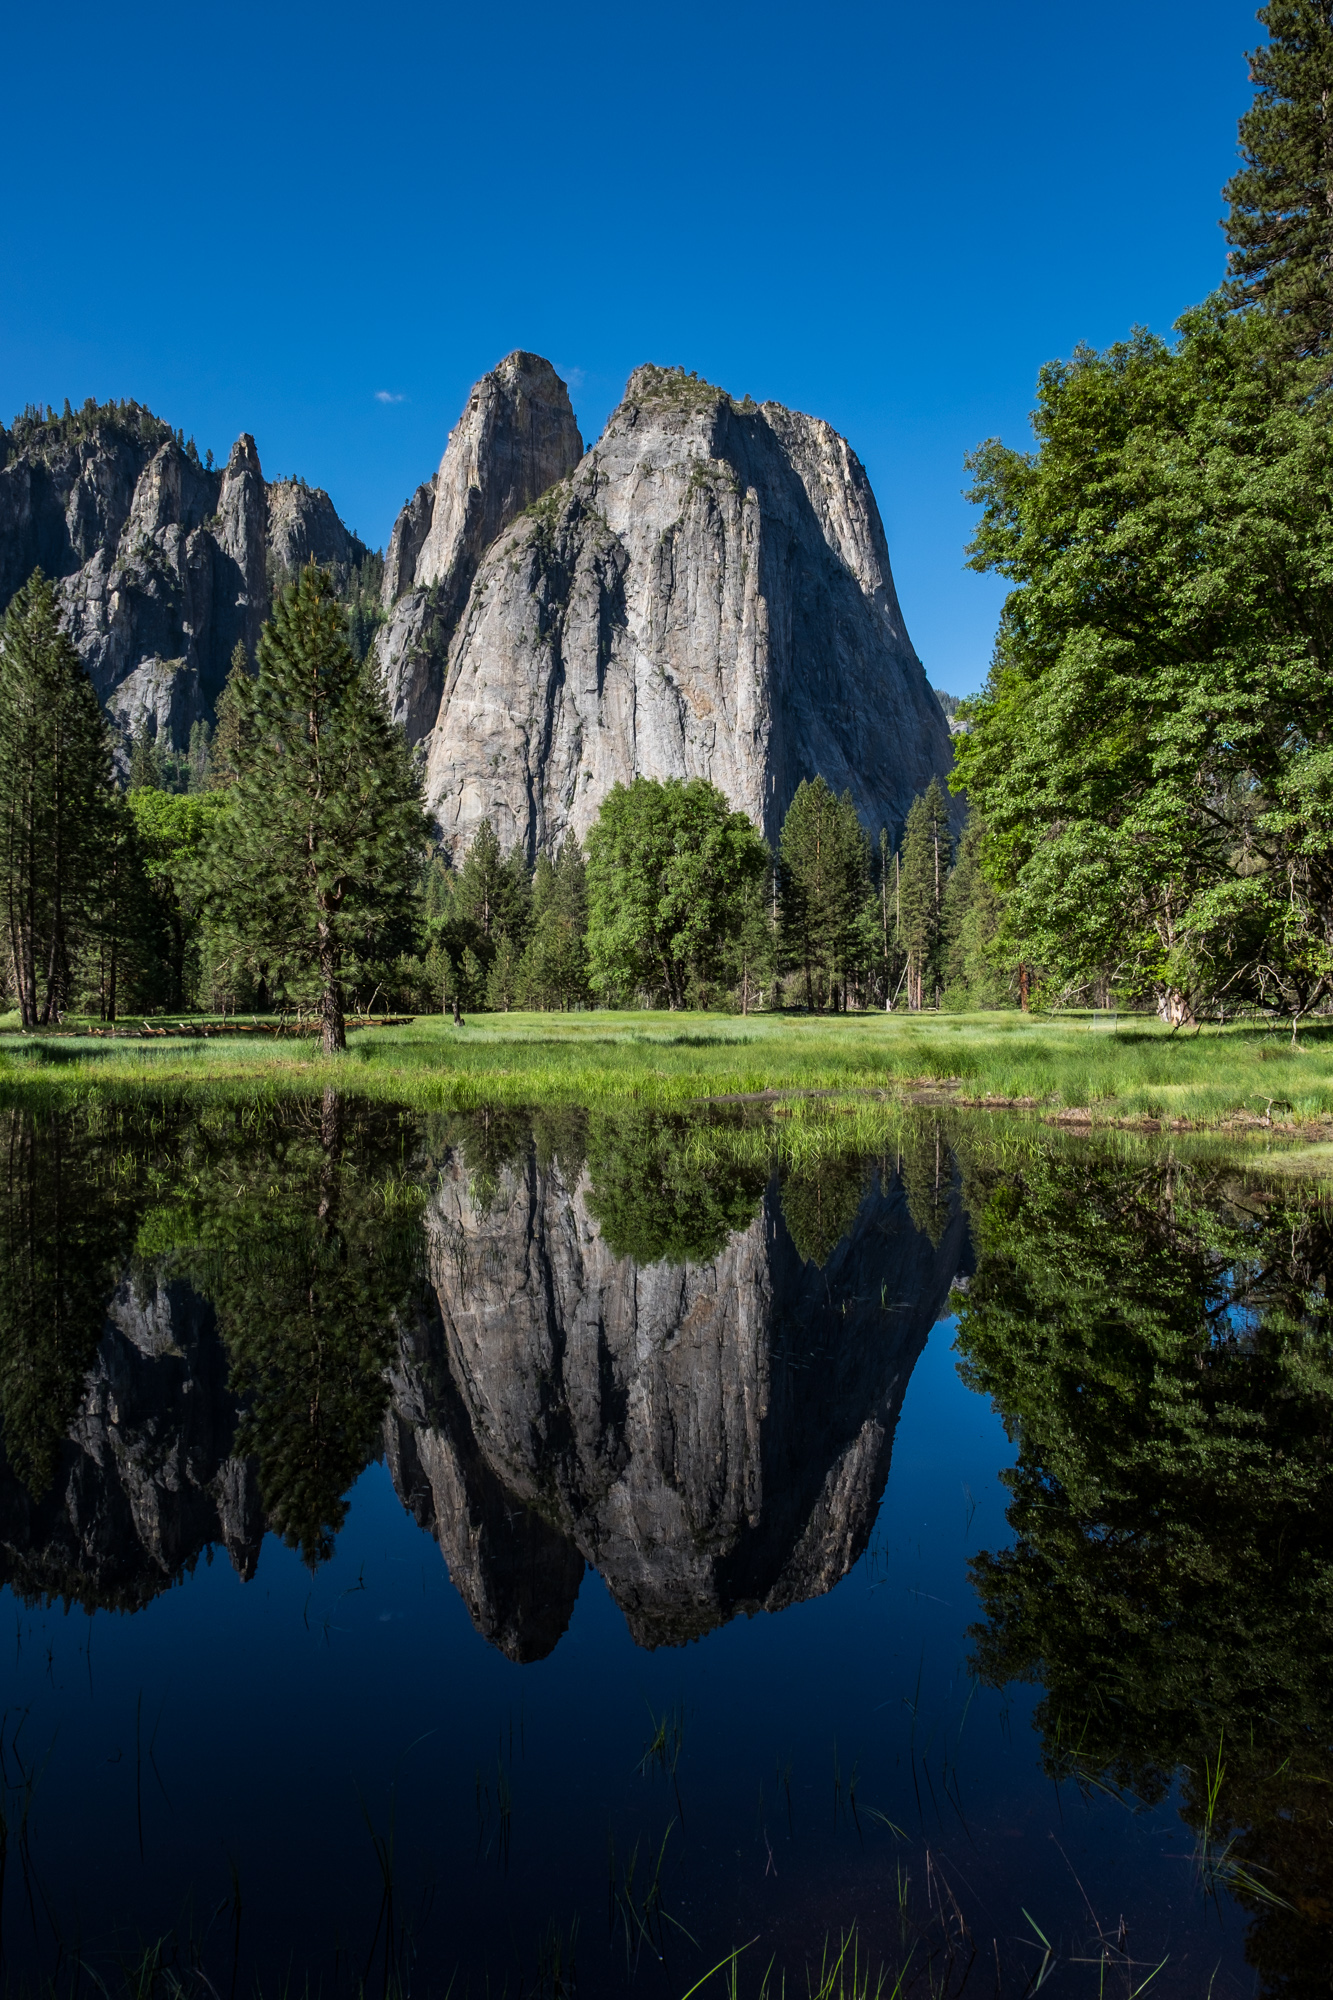 Back in Yosemite Valley, we found this beautiful reflection one early morning.